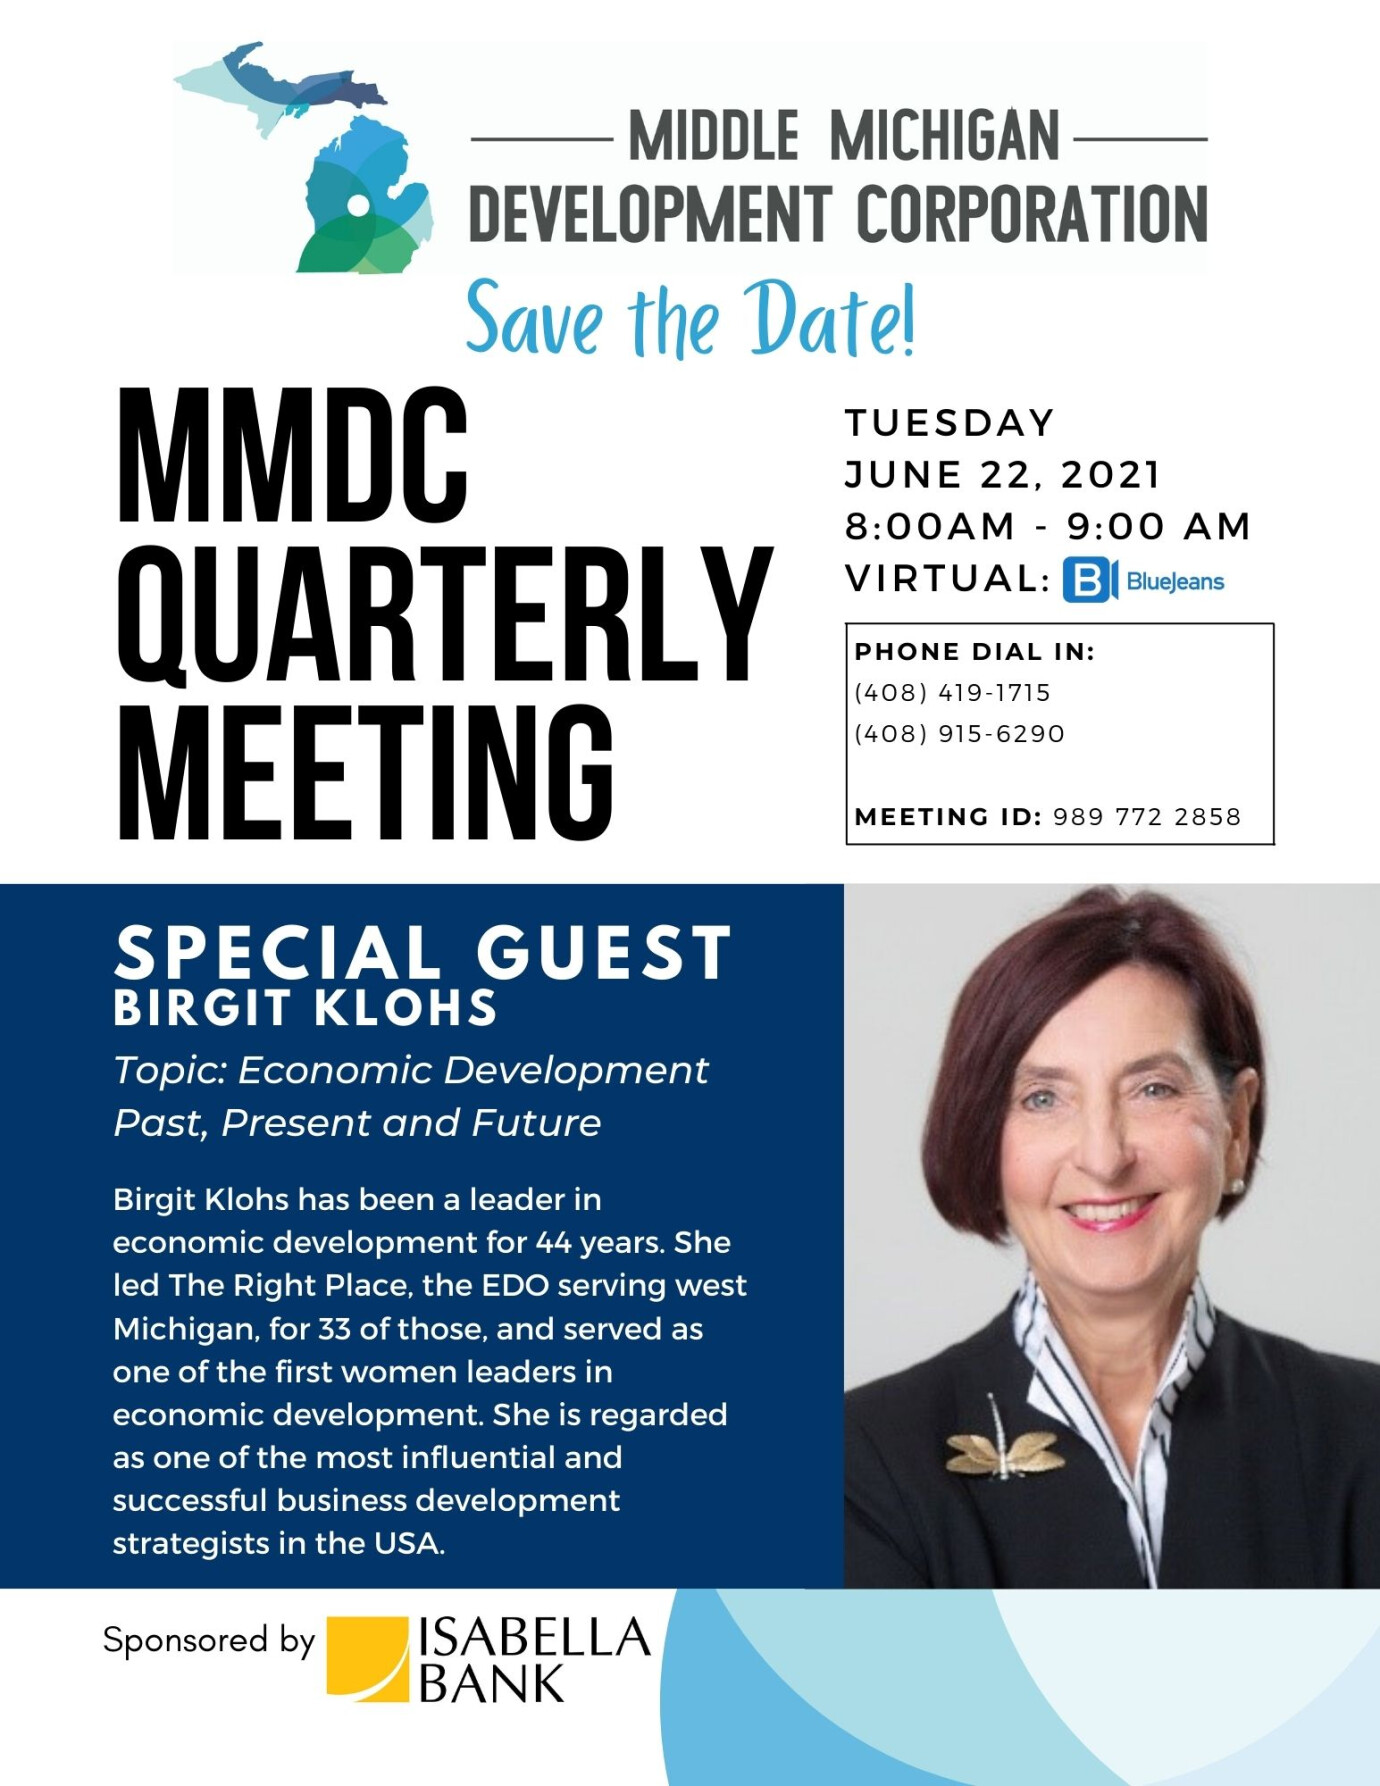 June Quarterly Meeting Featuring Birgit Klohs, Past President and CEO of The Right Place